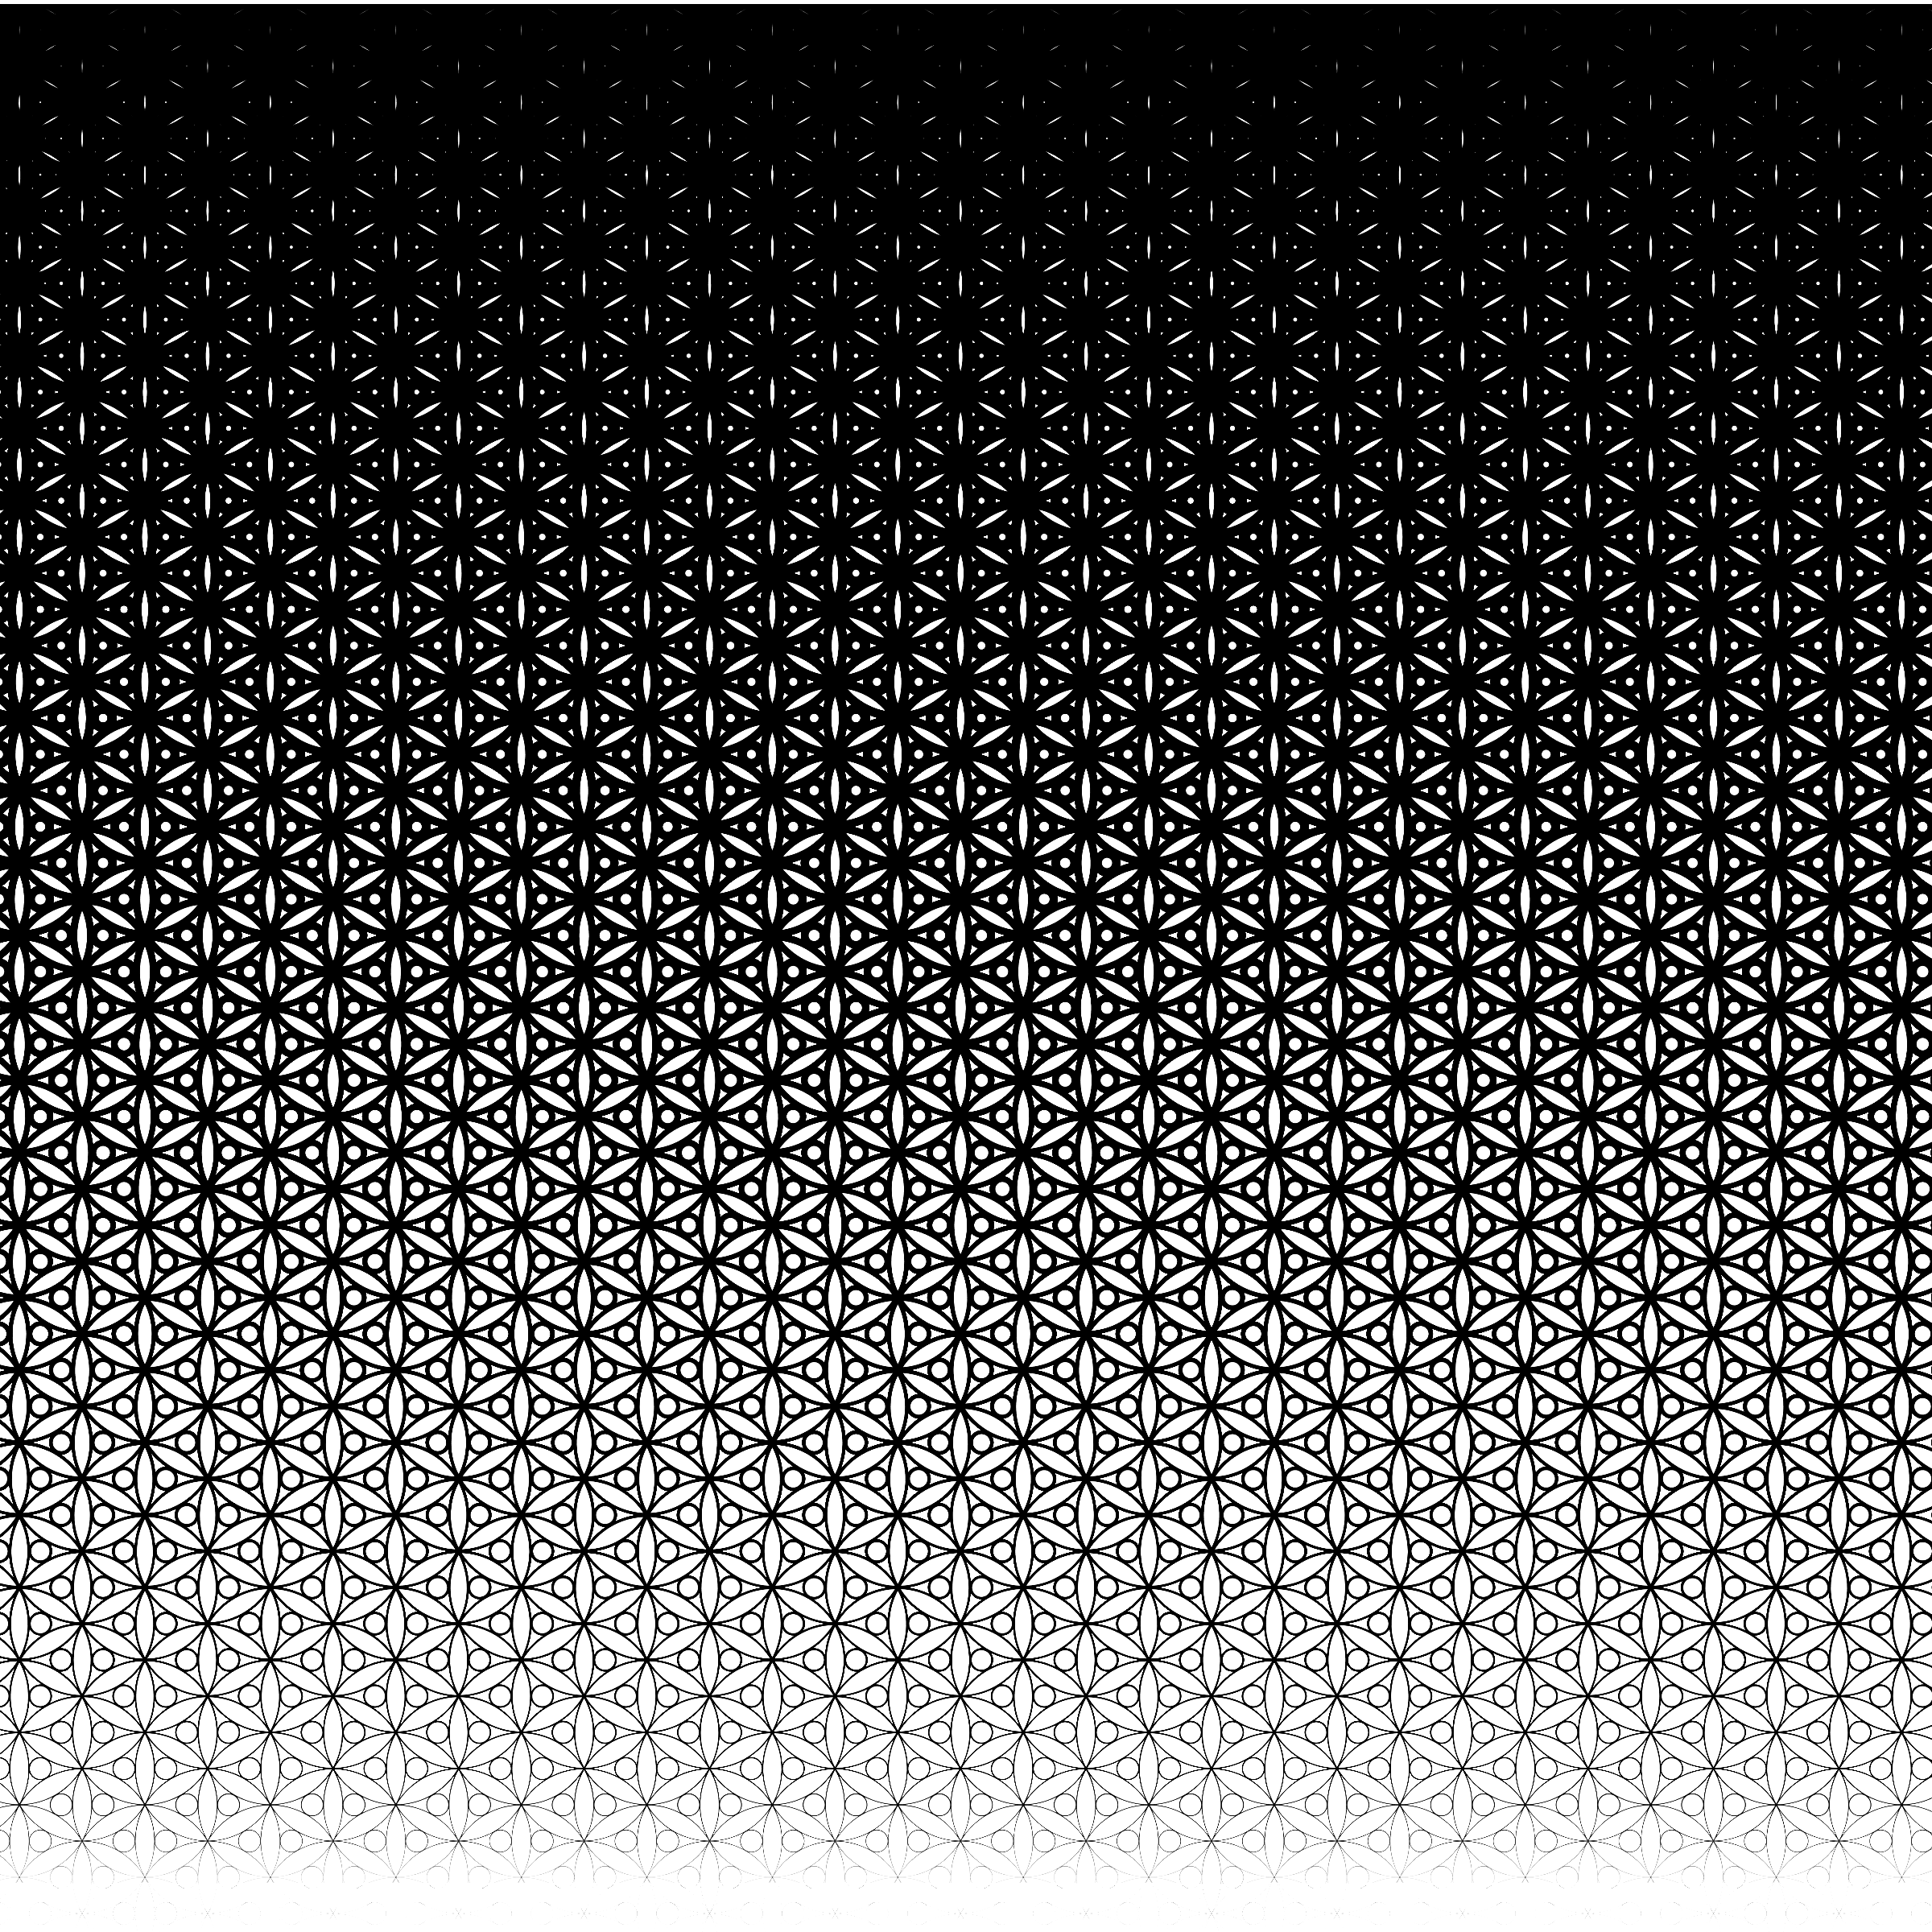 circle halftone template 2 by Lazur URH